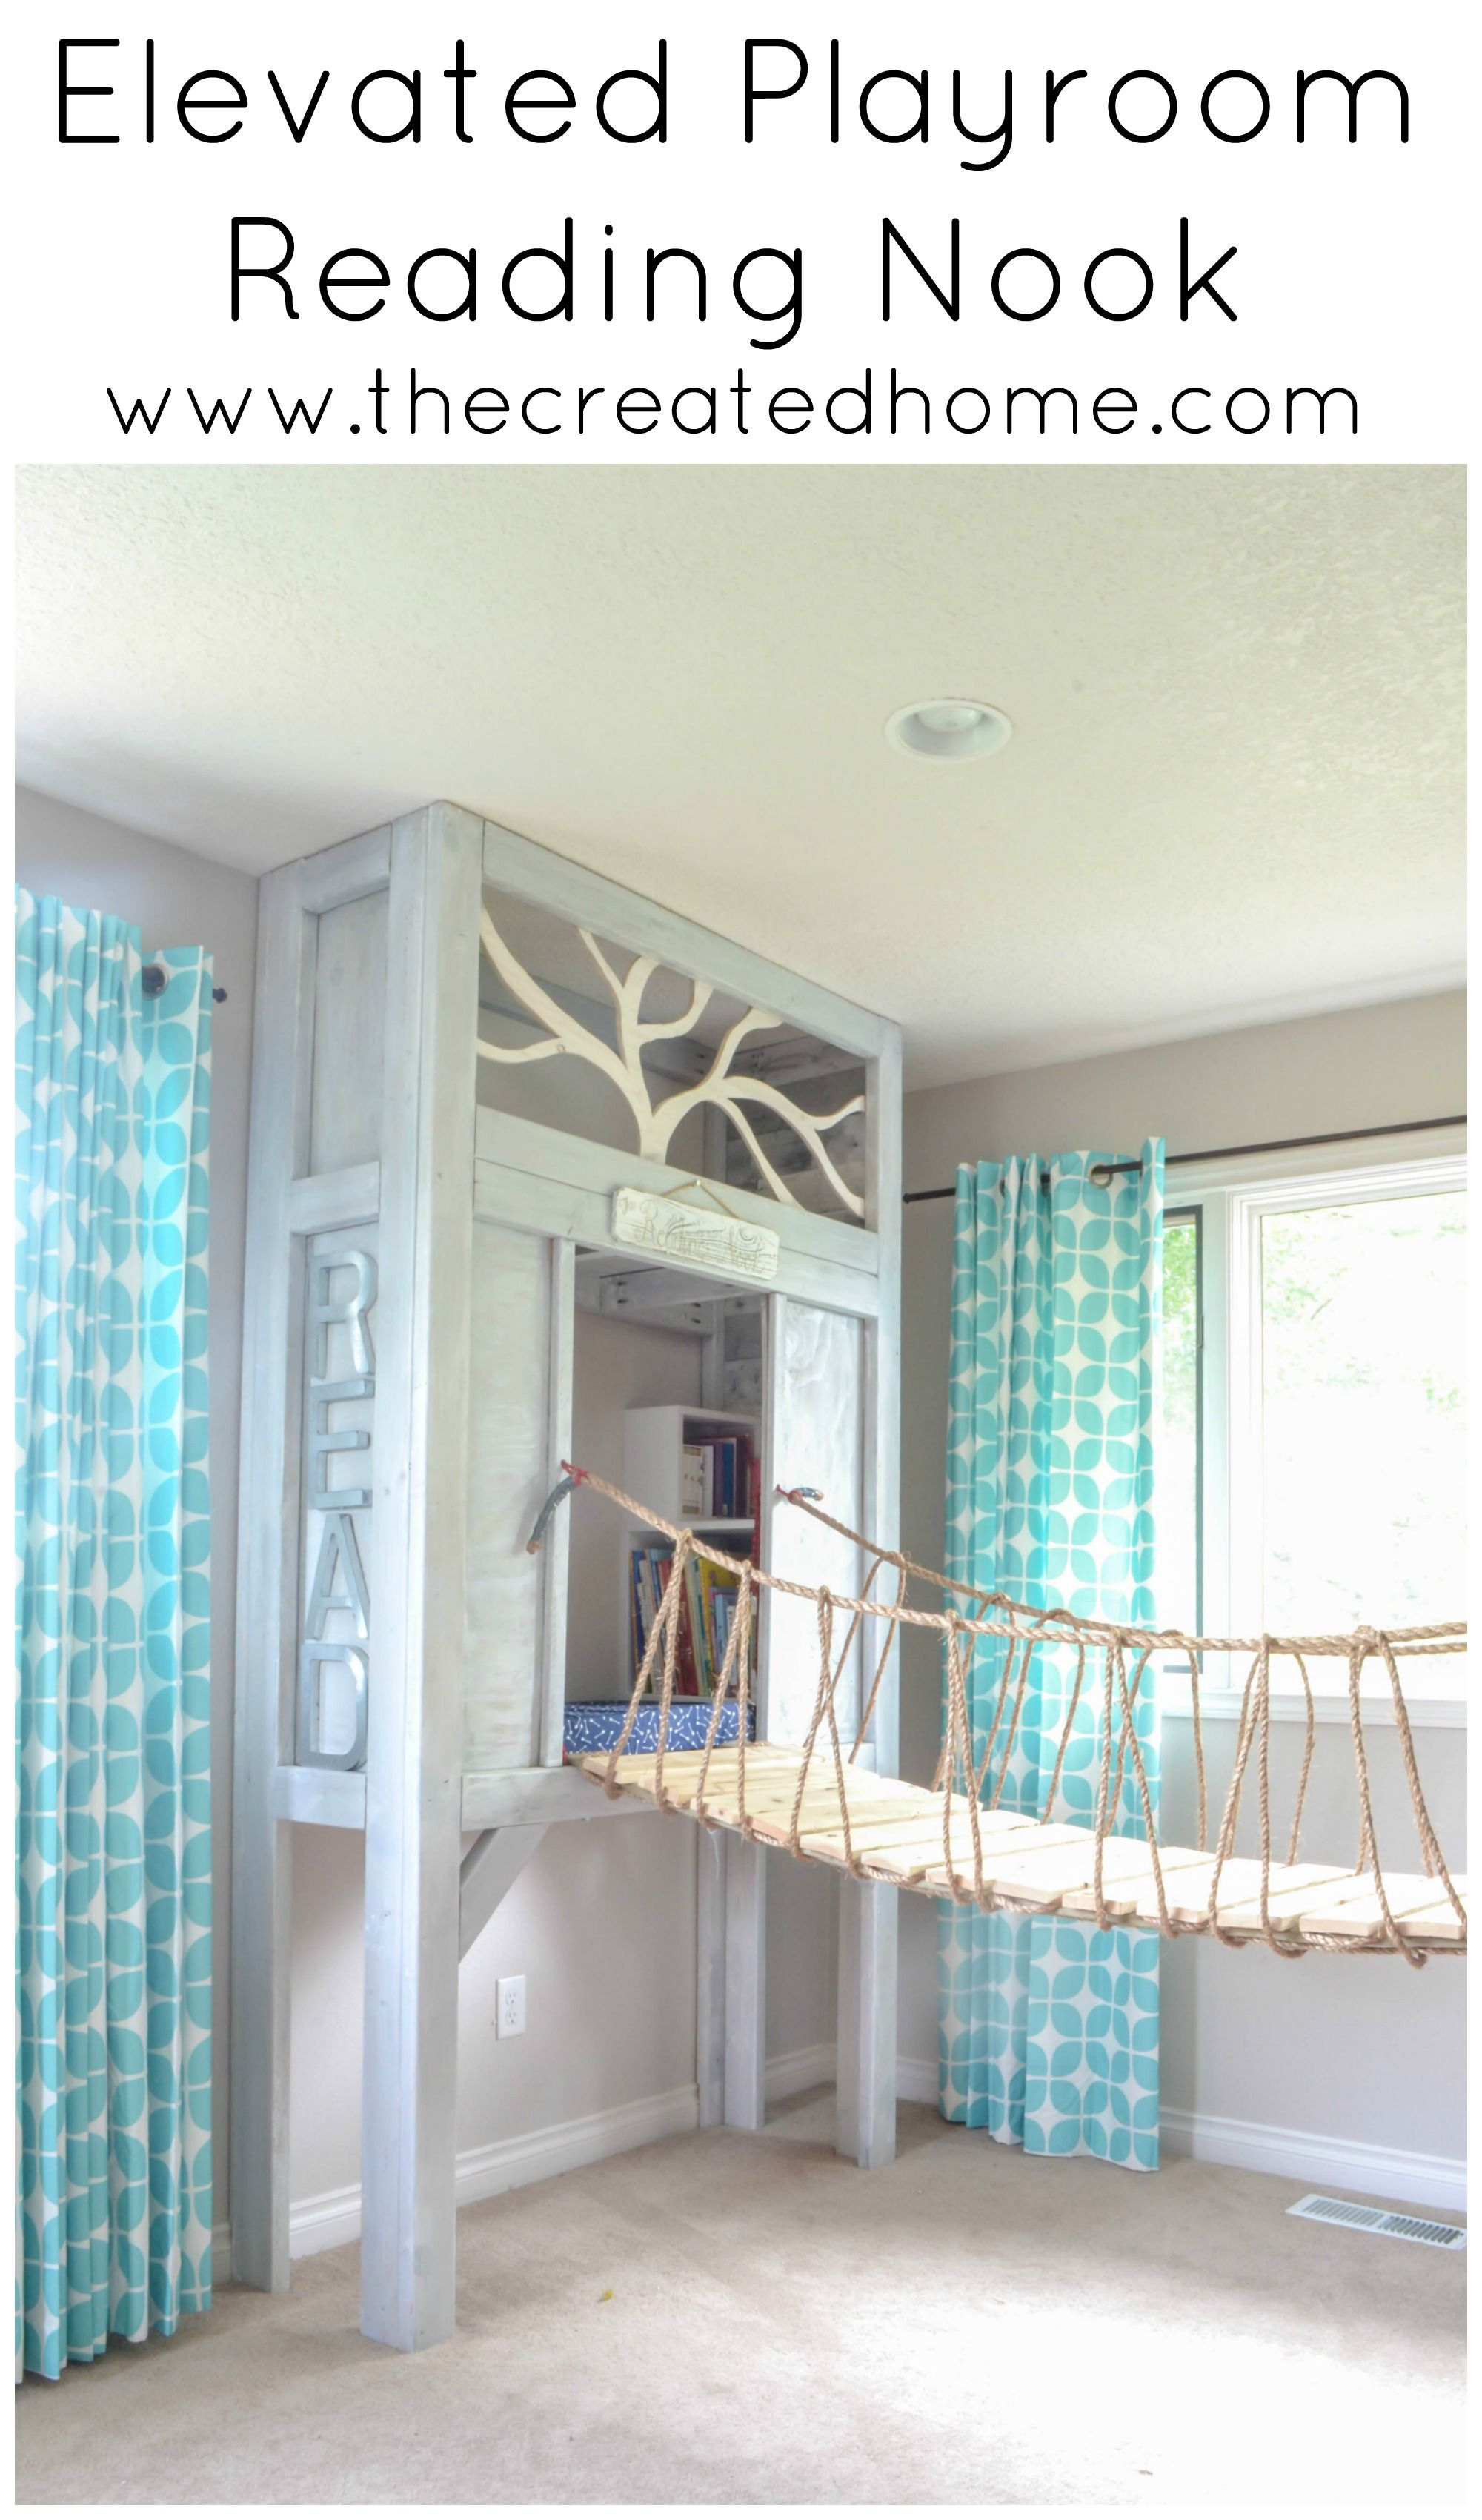 Elevated Playroom Reading Nook | Class Decorating | Room Decor, Girl